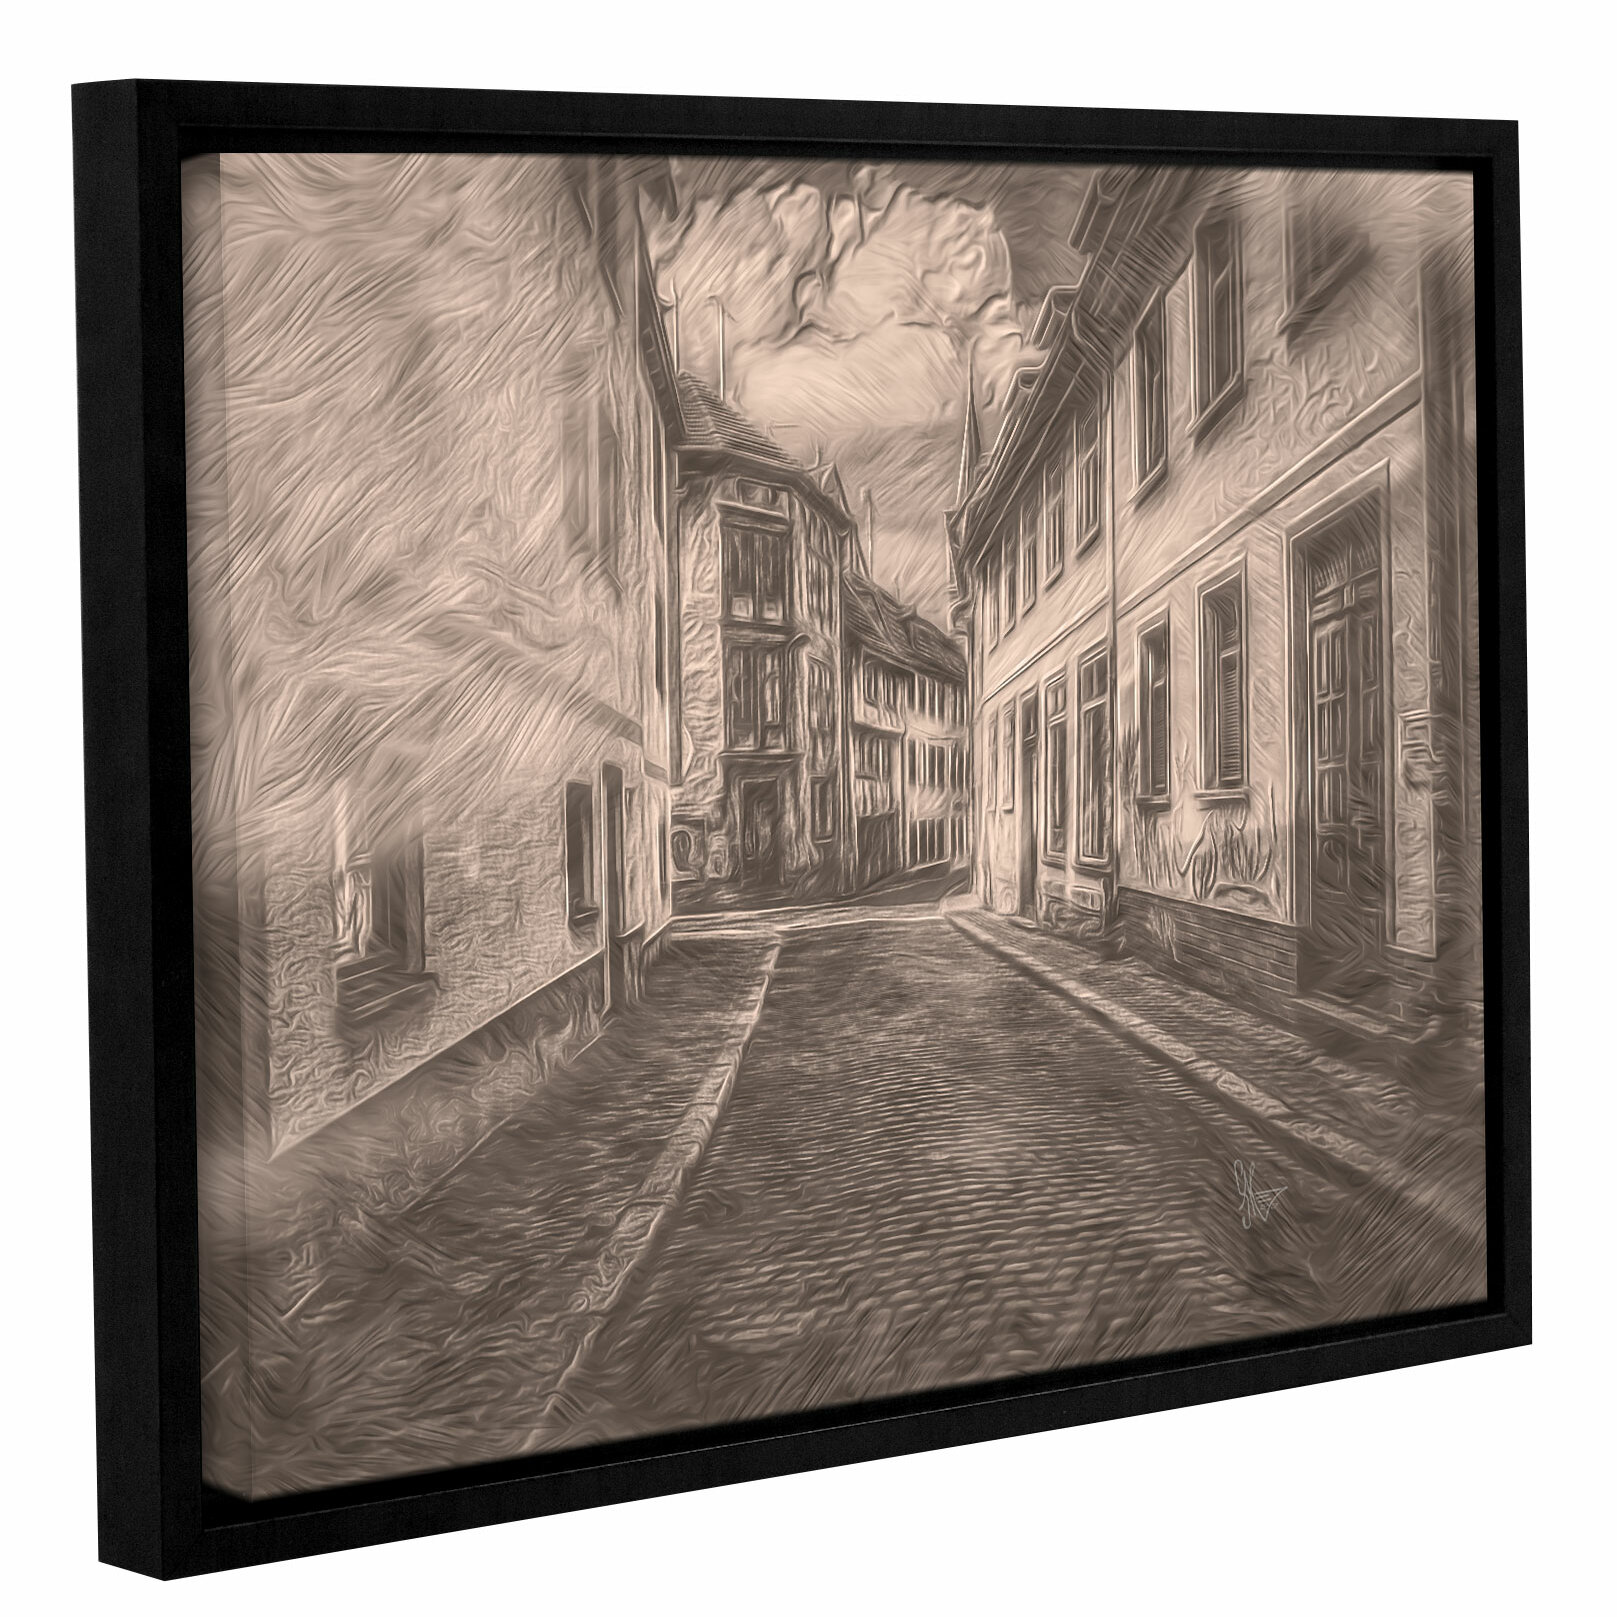 Cobblestone road framed pencil drawing print on canvas